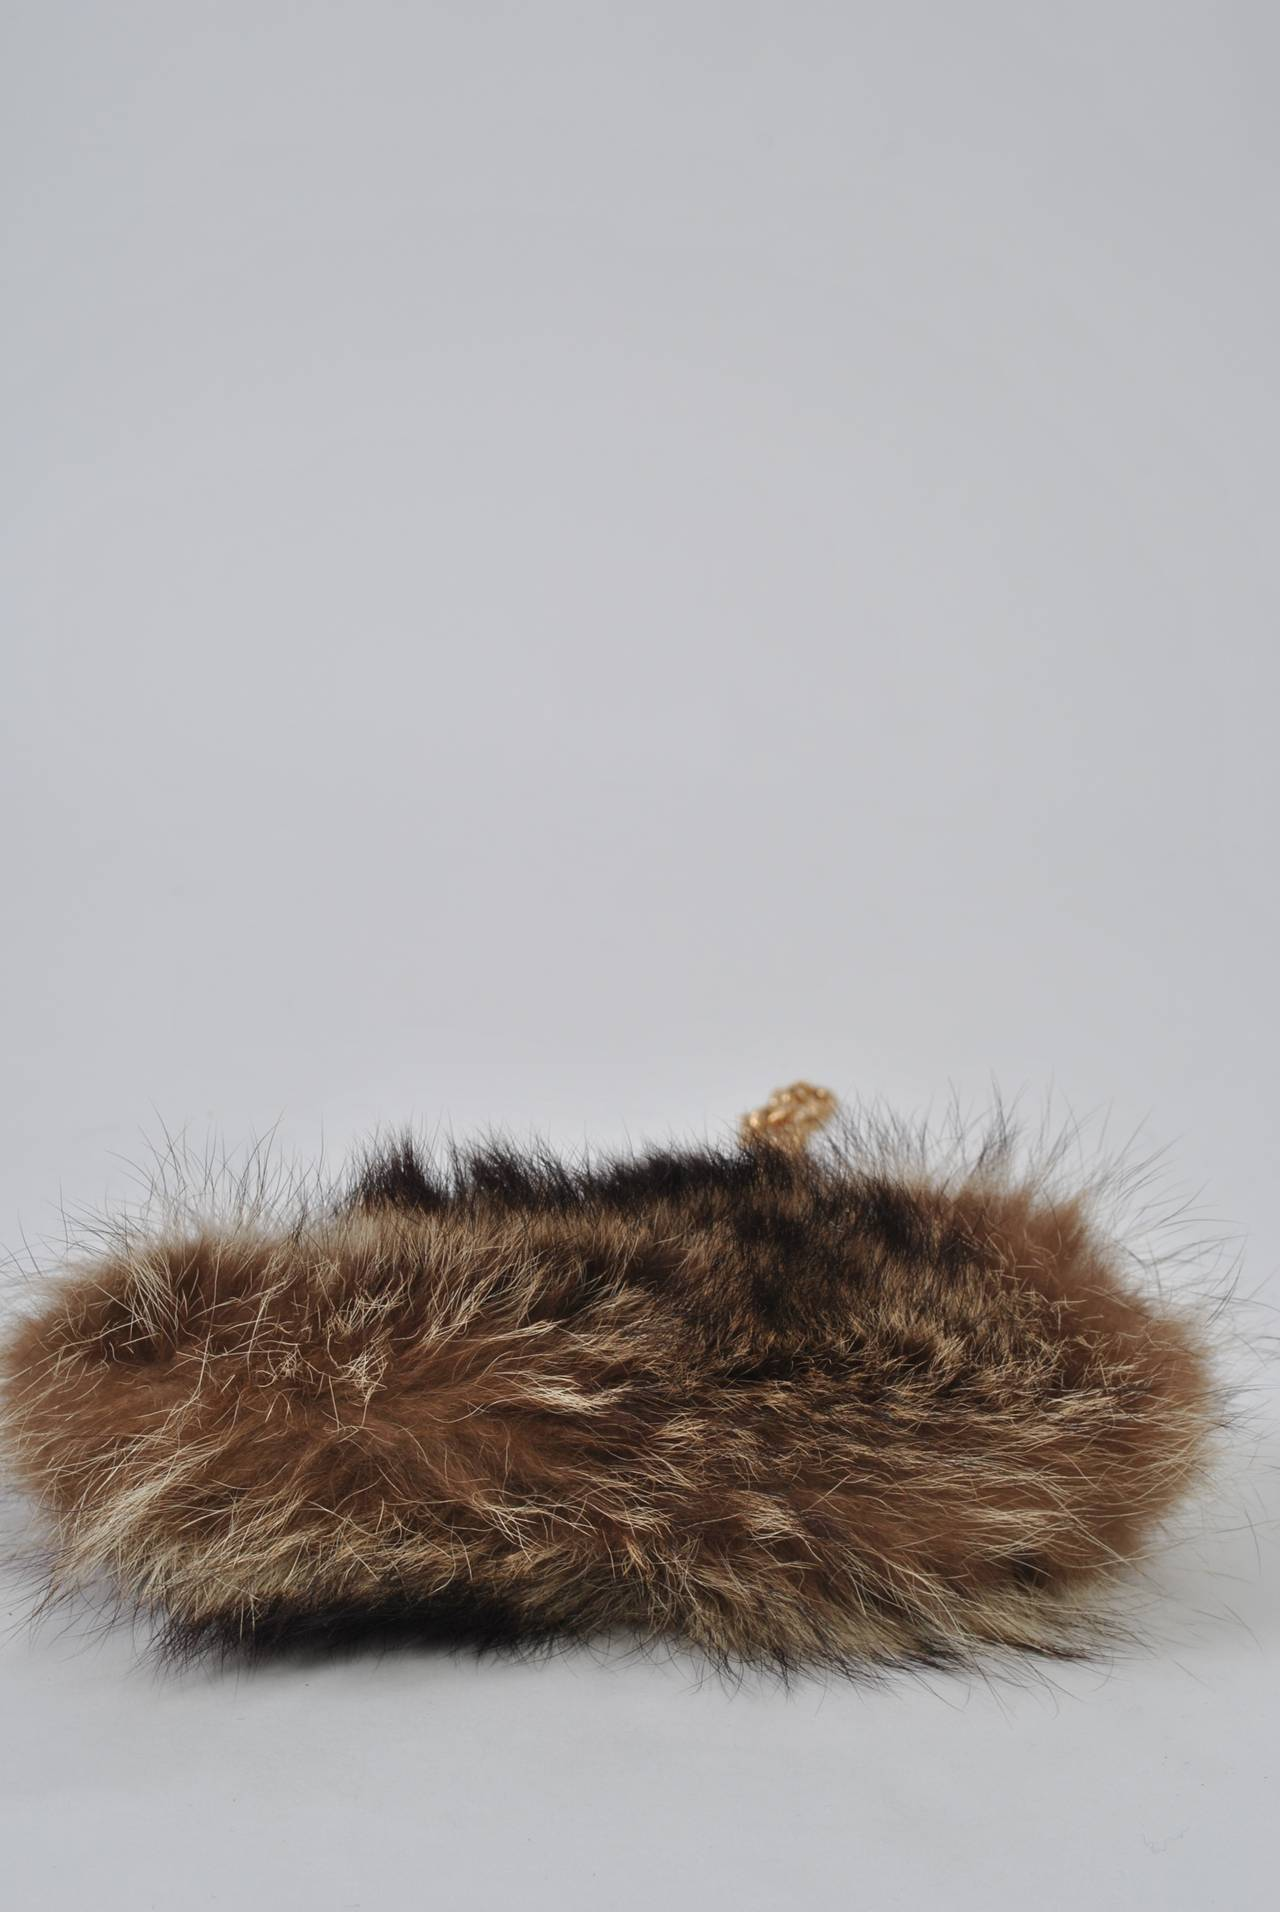 Fur Shoulder Bag In Excellent Condition For Sale In Alford, MA